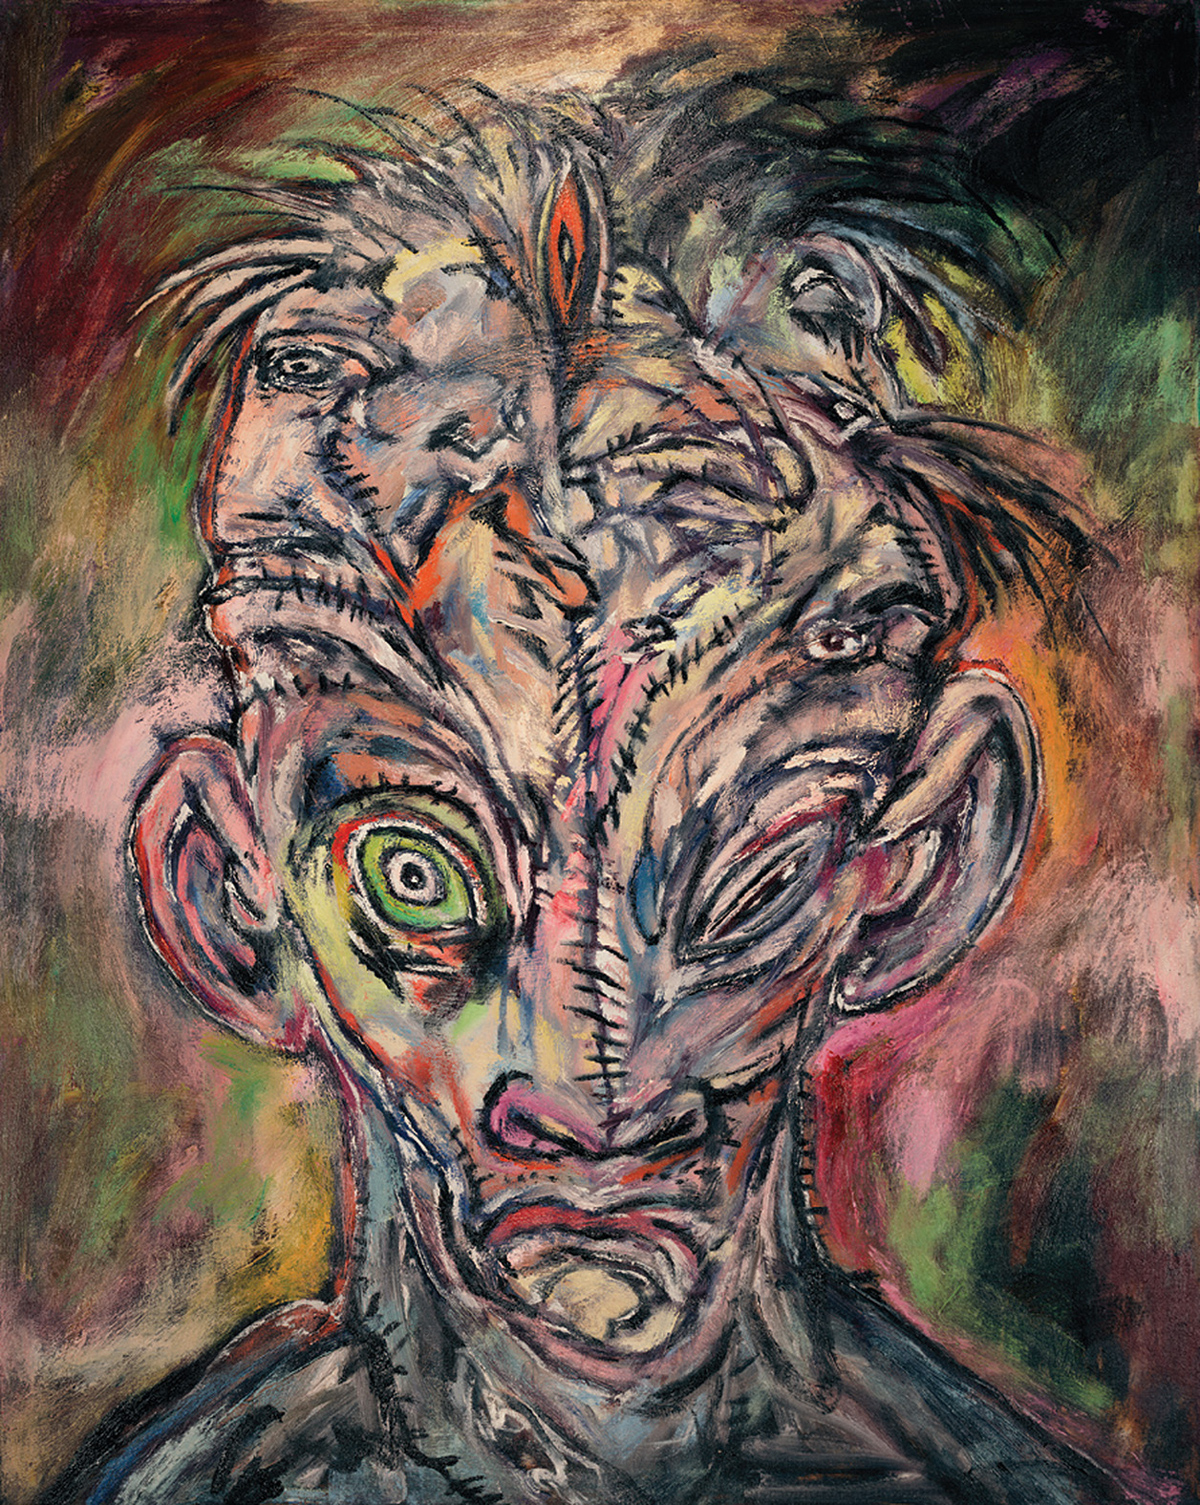 Clive Barker - Paintings - Dissension